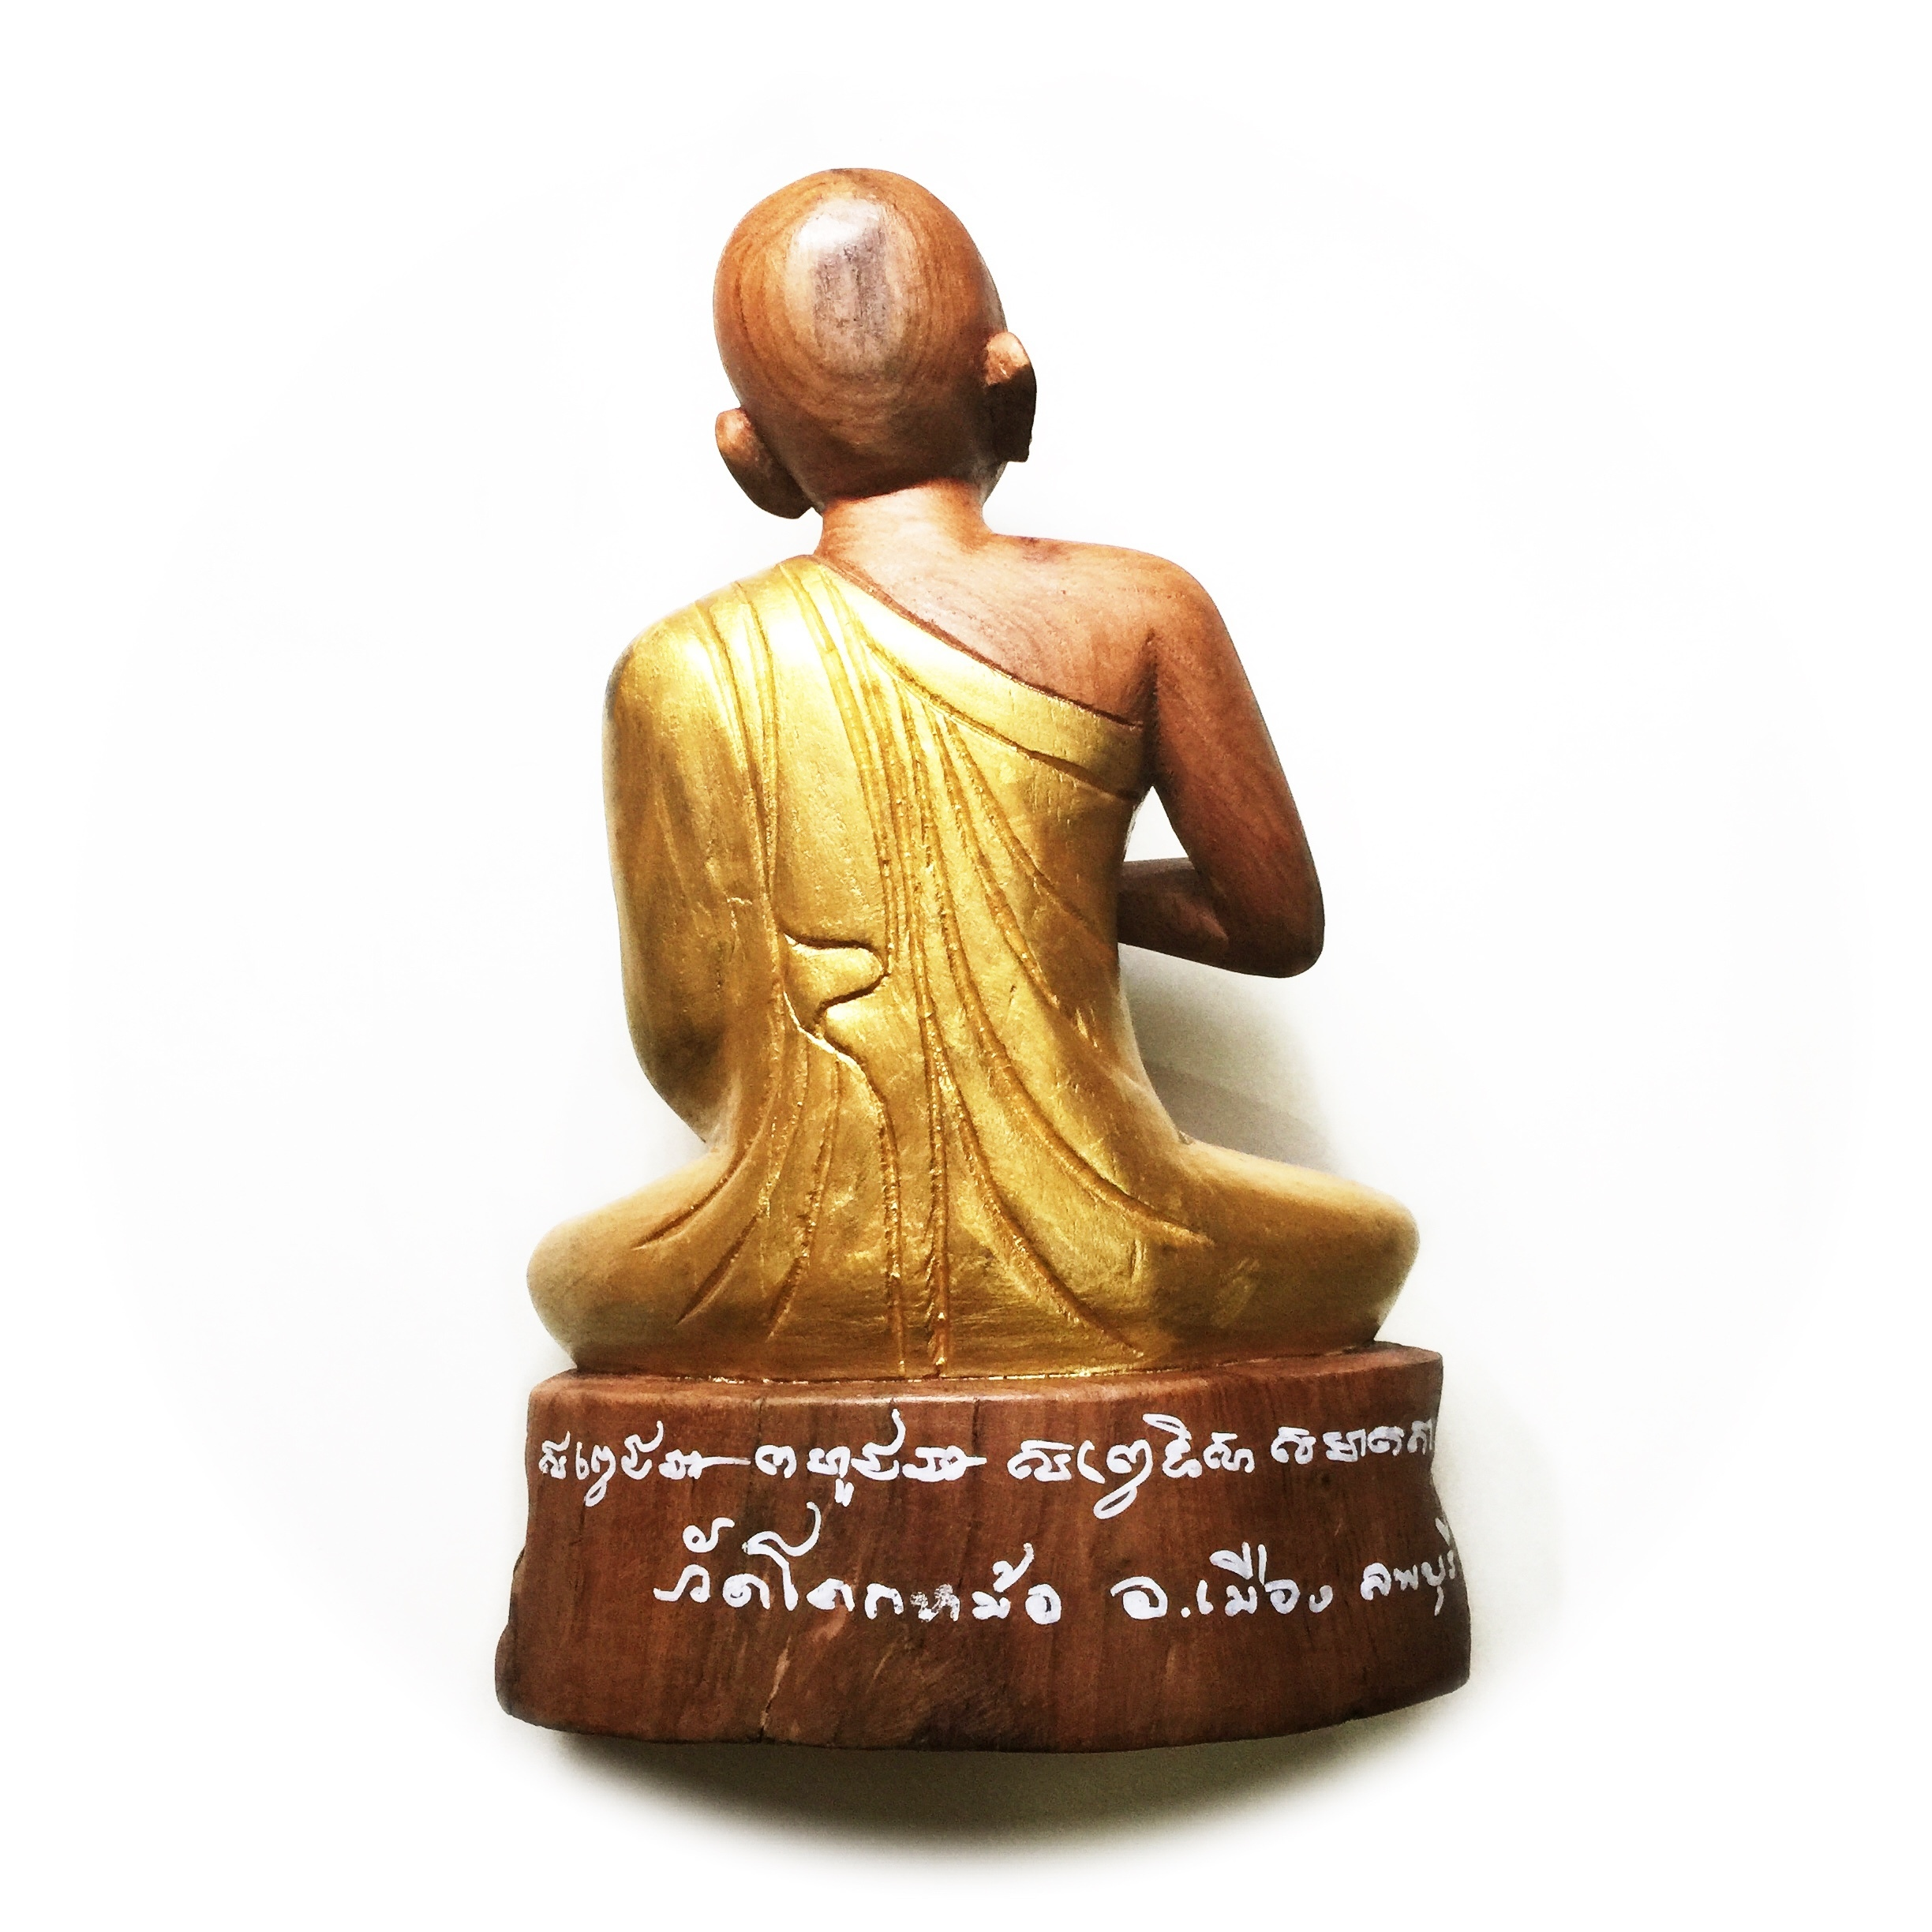 Phra Upakut Statue with Hand Inscriptions in Sacred Khom Script